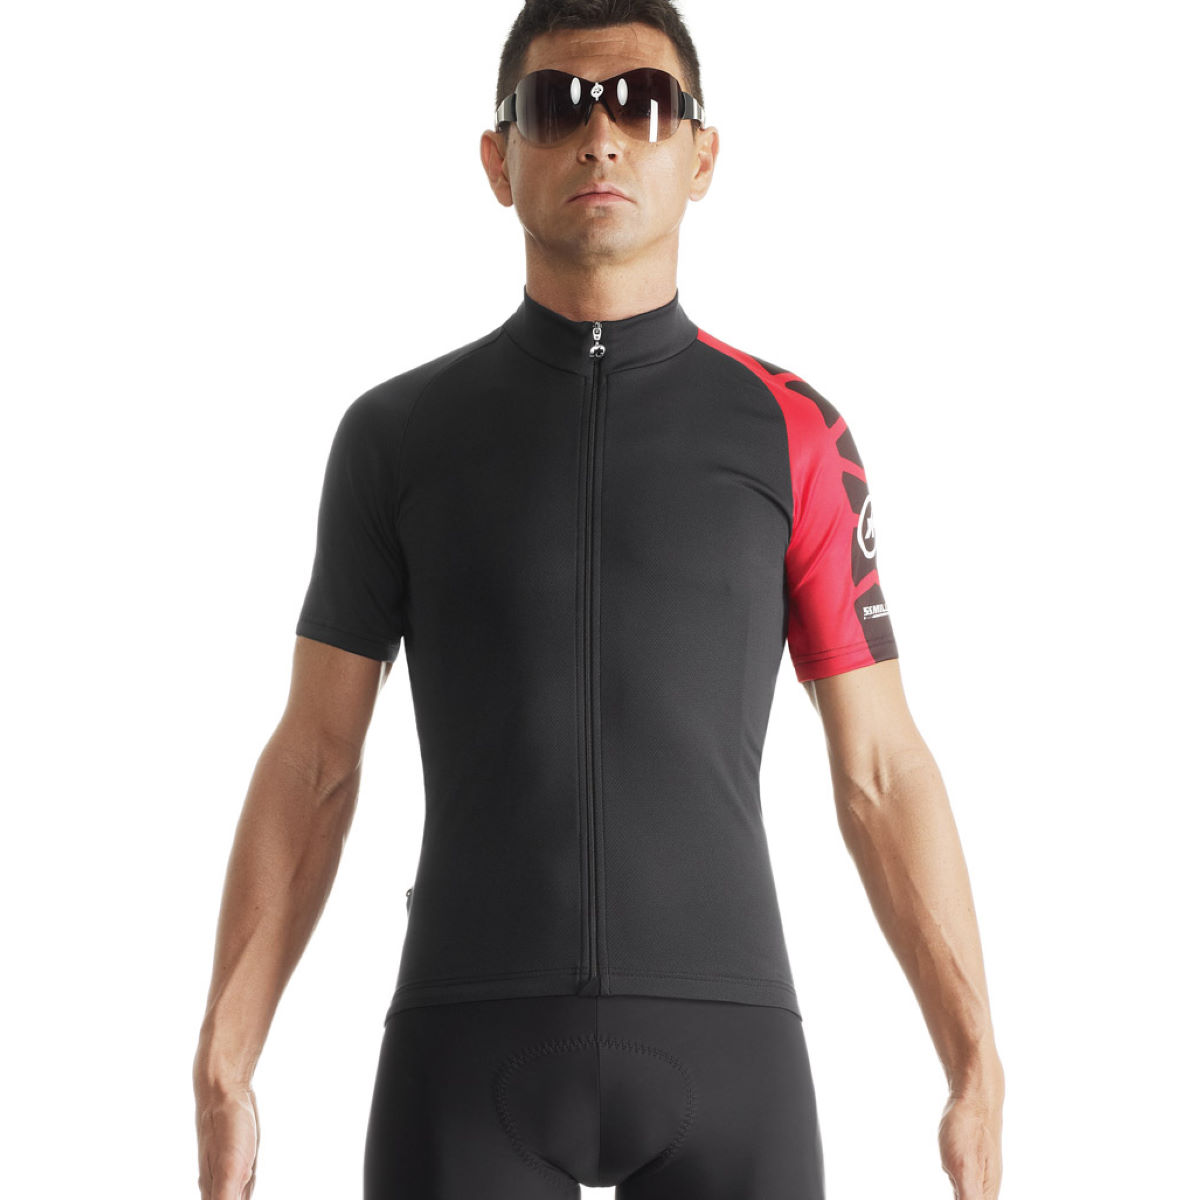 Maillot Assos SS.mille_evo7 - XL National Red Maillots vélo à manches courtes